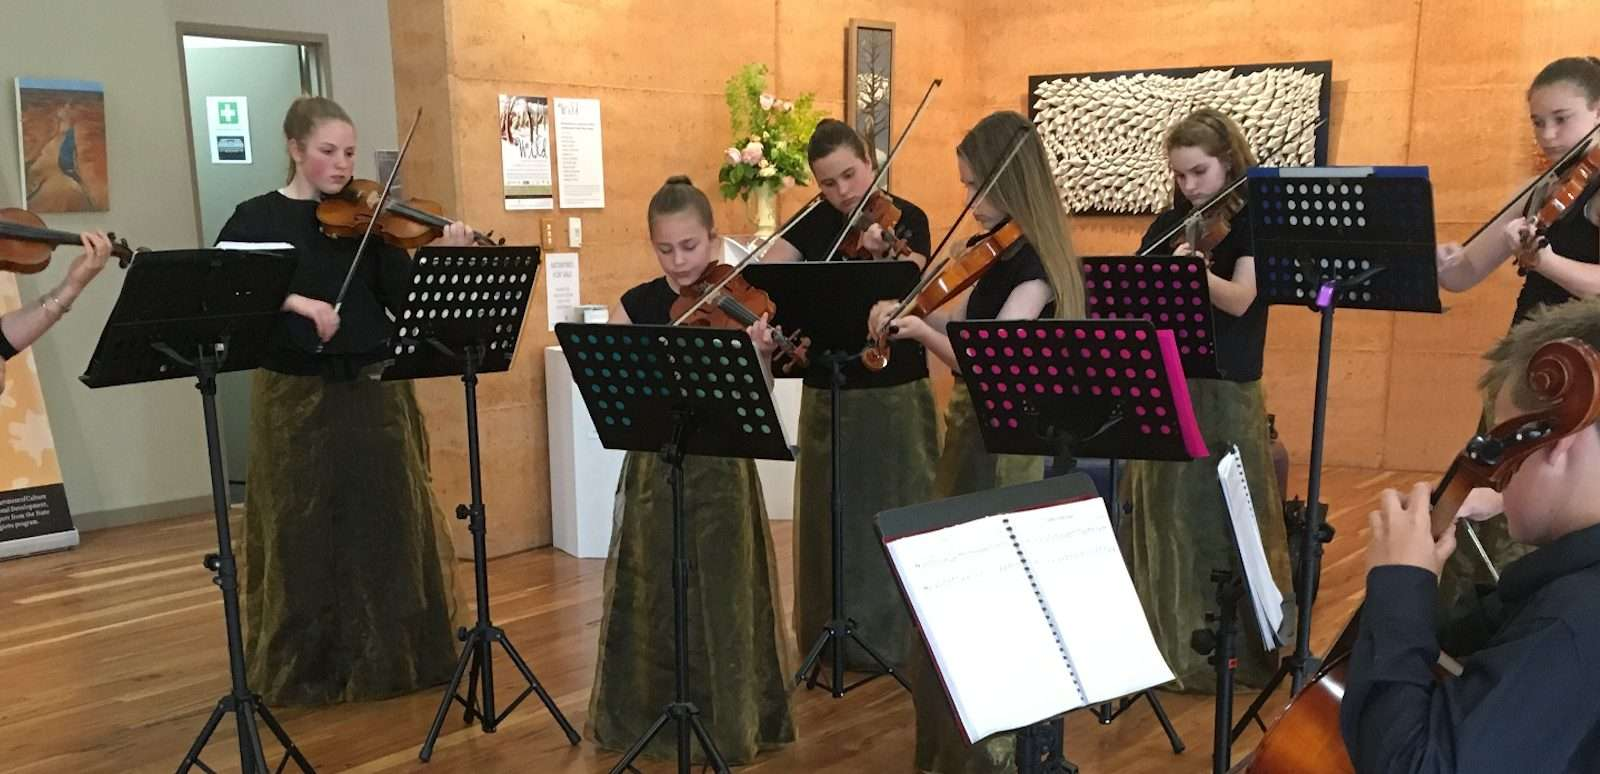 The 'Highly Strung' ensemble (a local youth ensemble) perform in the painted Tree Gallery as part of Southern Forest Art's Sct-Belong-Commit 2016 festival program